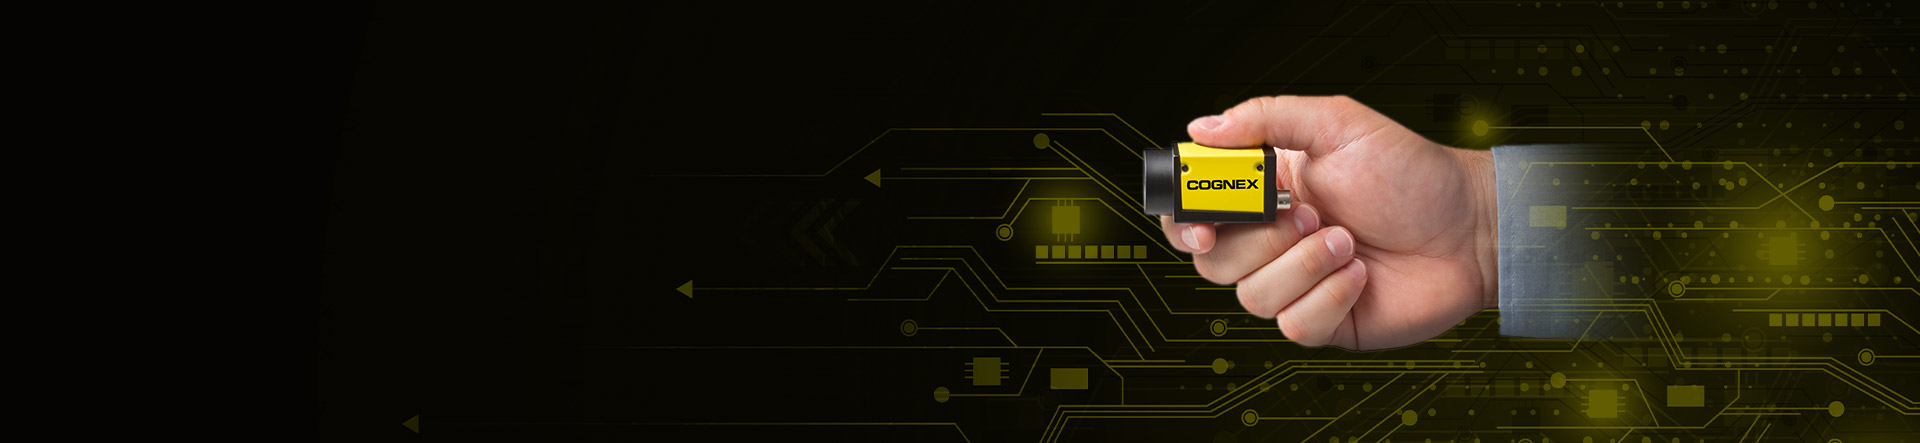 Cognex employee holding CIC Industrial Camera